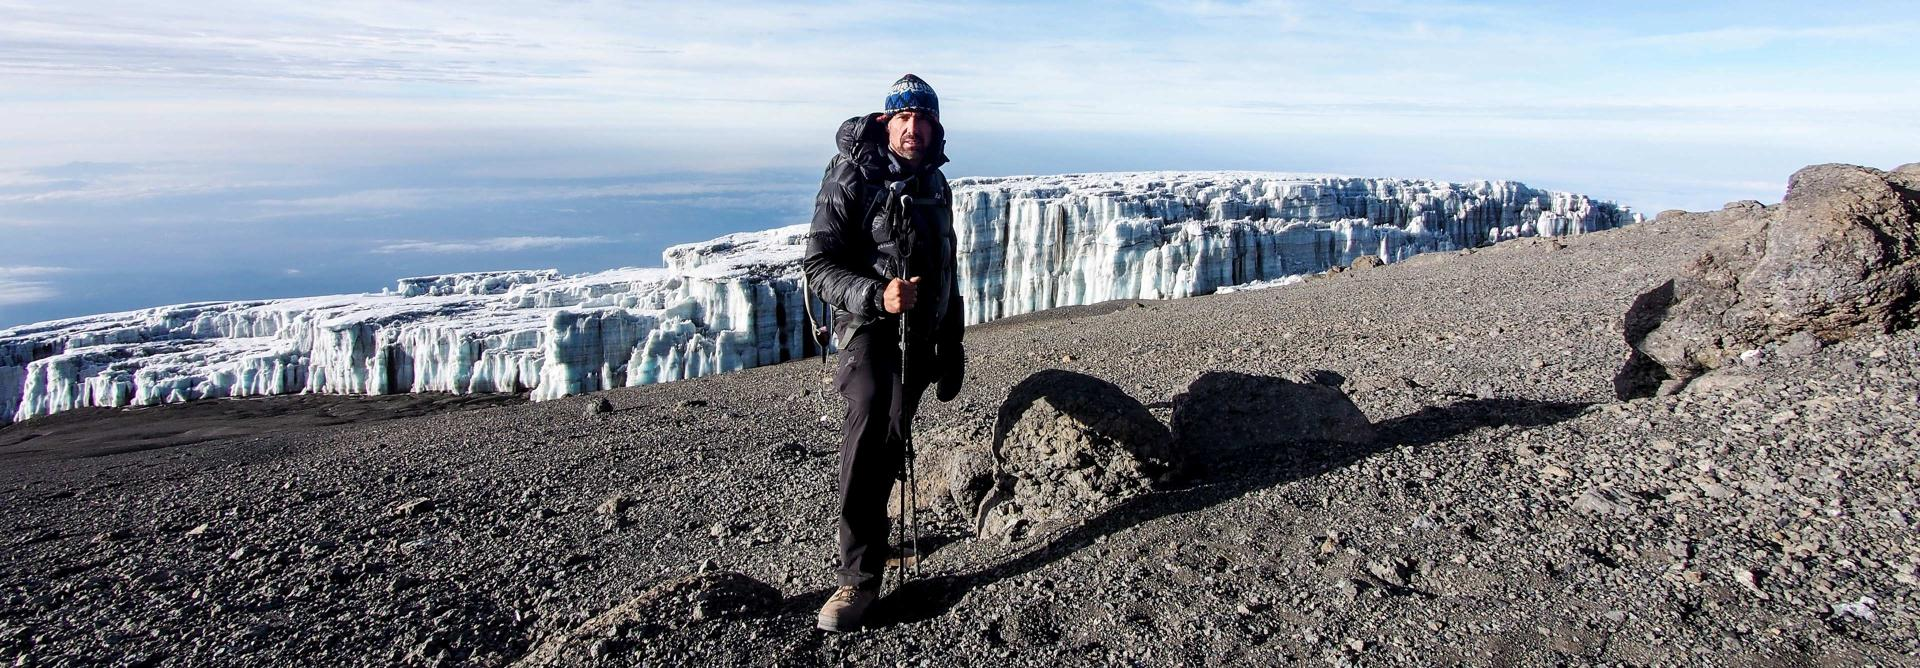 Overlooking a glacier on Mt. Kilimanjaro